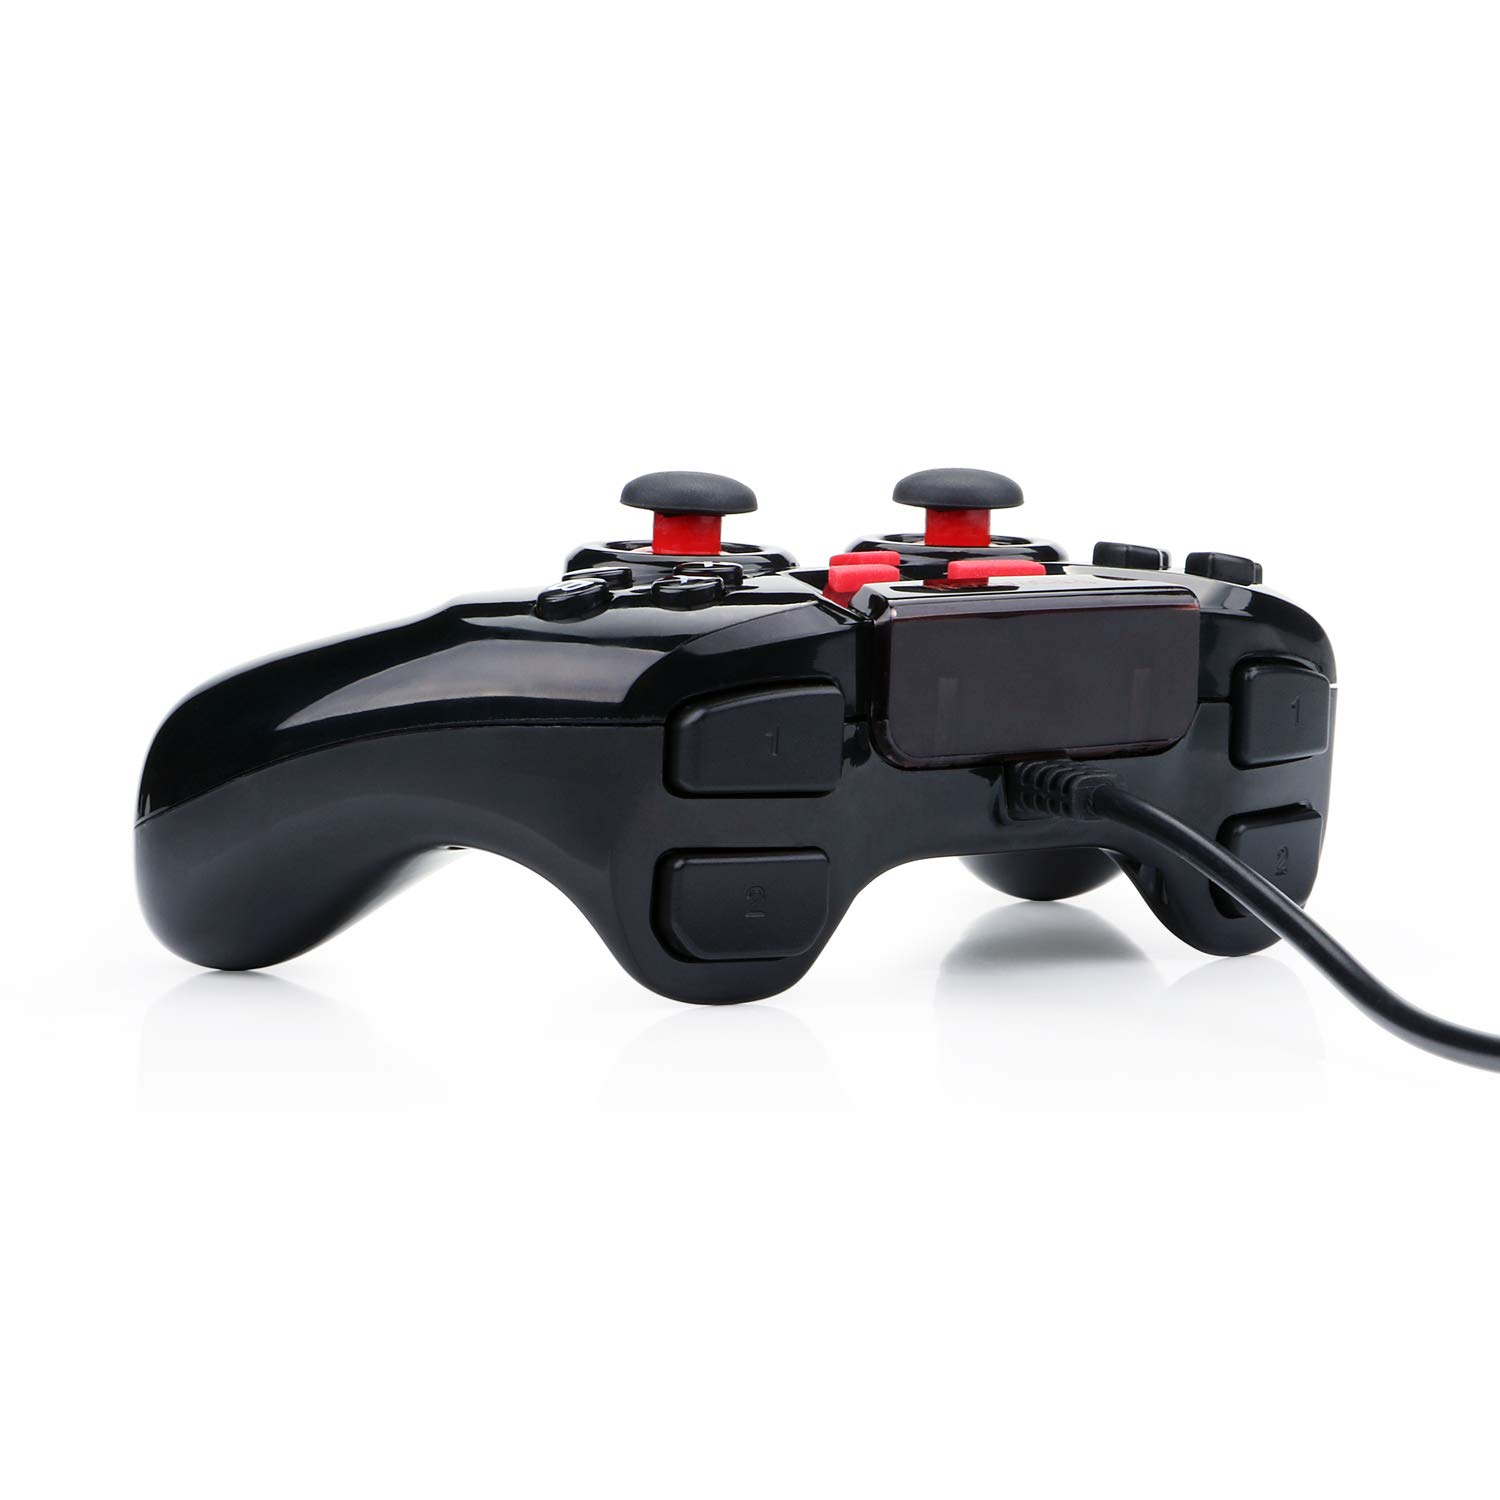 Xbox 360 Games on PC Game Controller for PC Gaming of Windows Playstation Joystick for PC PS3 Wireless Game Pad Controller for PC Xbox 360 Games G808 Harrow by Redragon Android PSP3